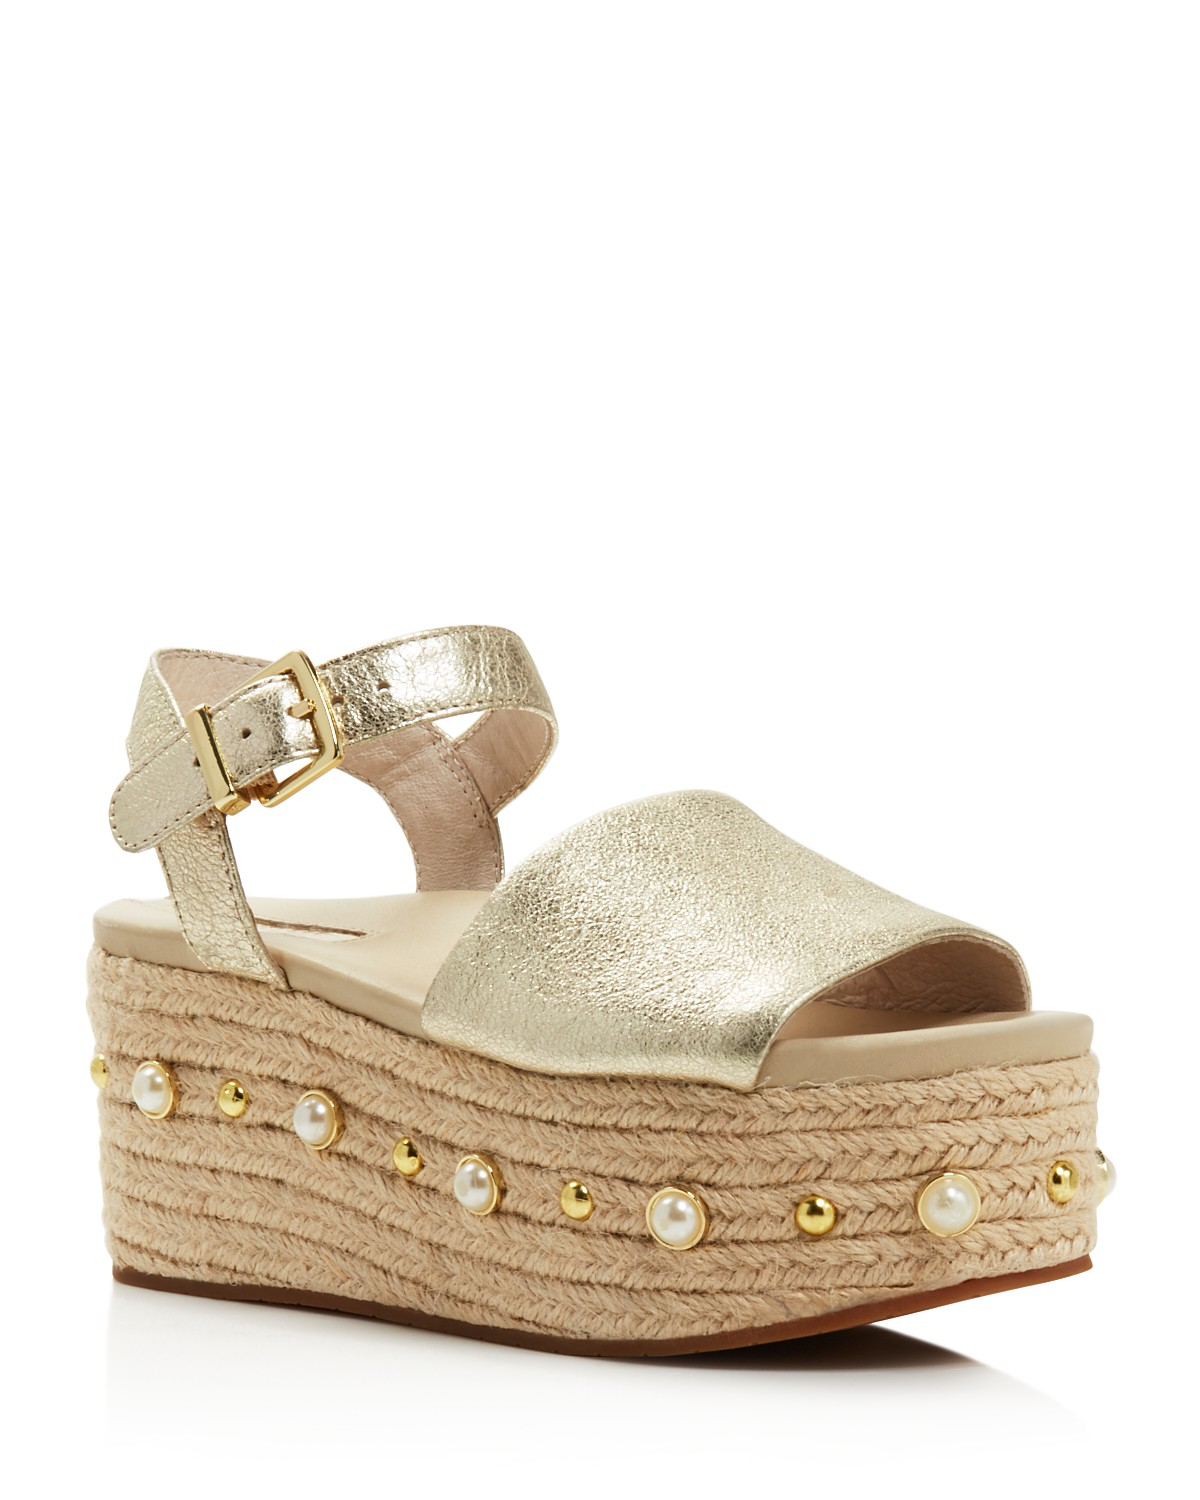 Kenneth Cole Women's Indra Leather Embellished Espadrille Platform Wedge Sandals ECBeal